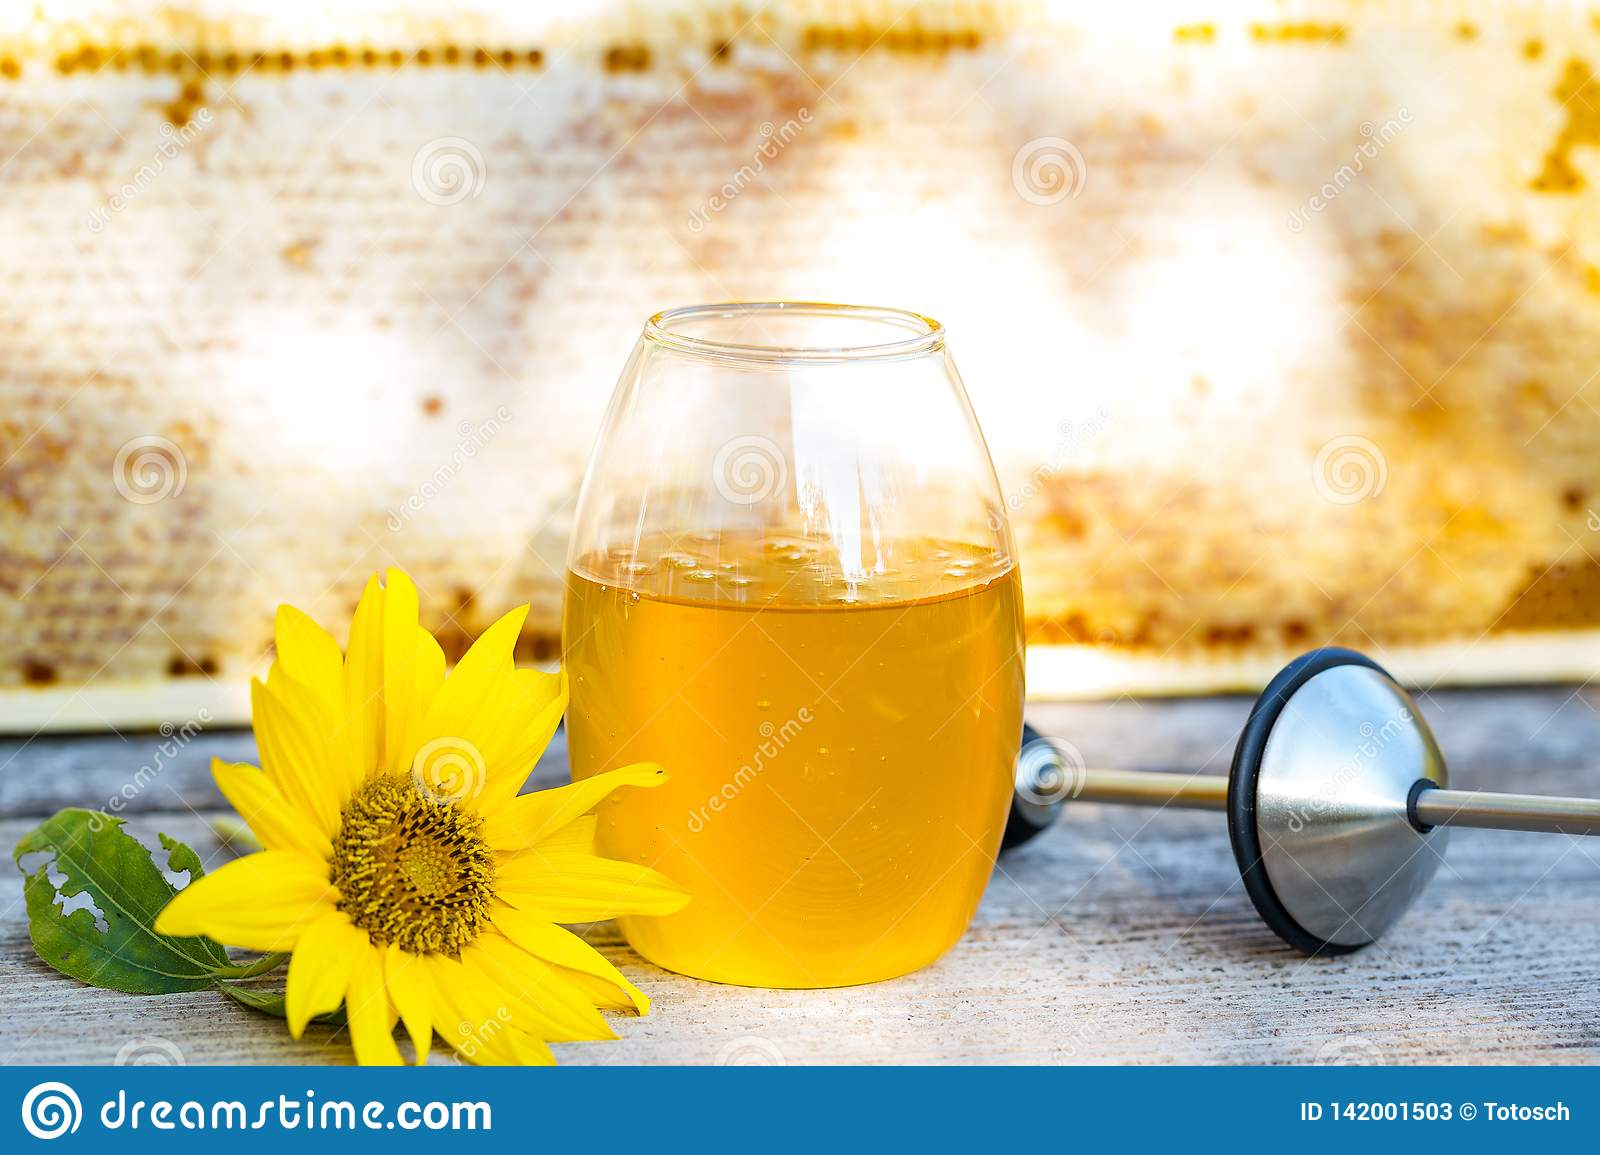 Closeup of jar of honey and a sunflower